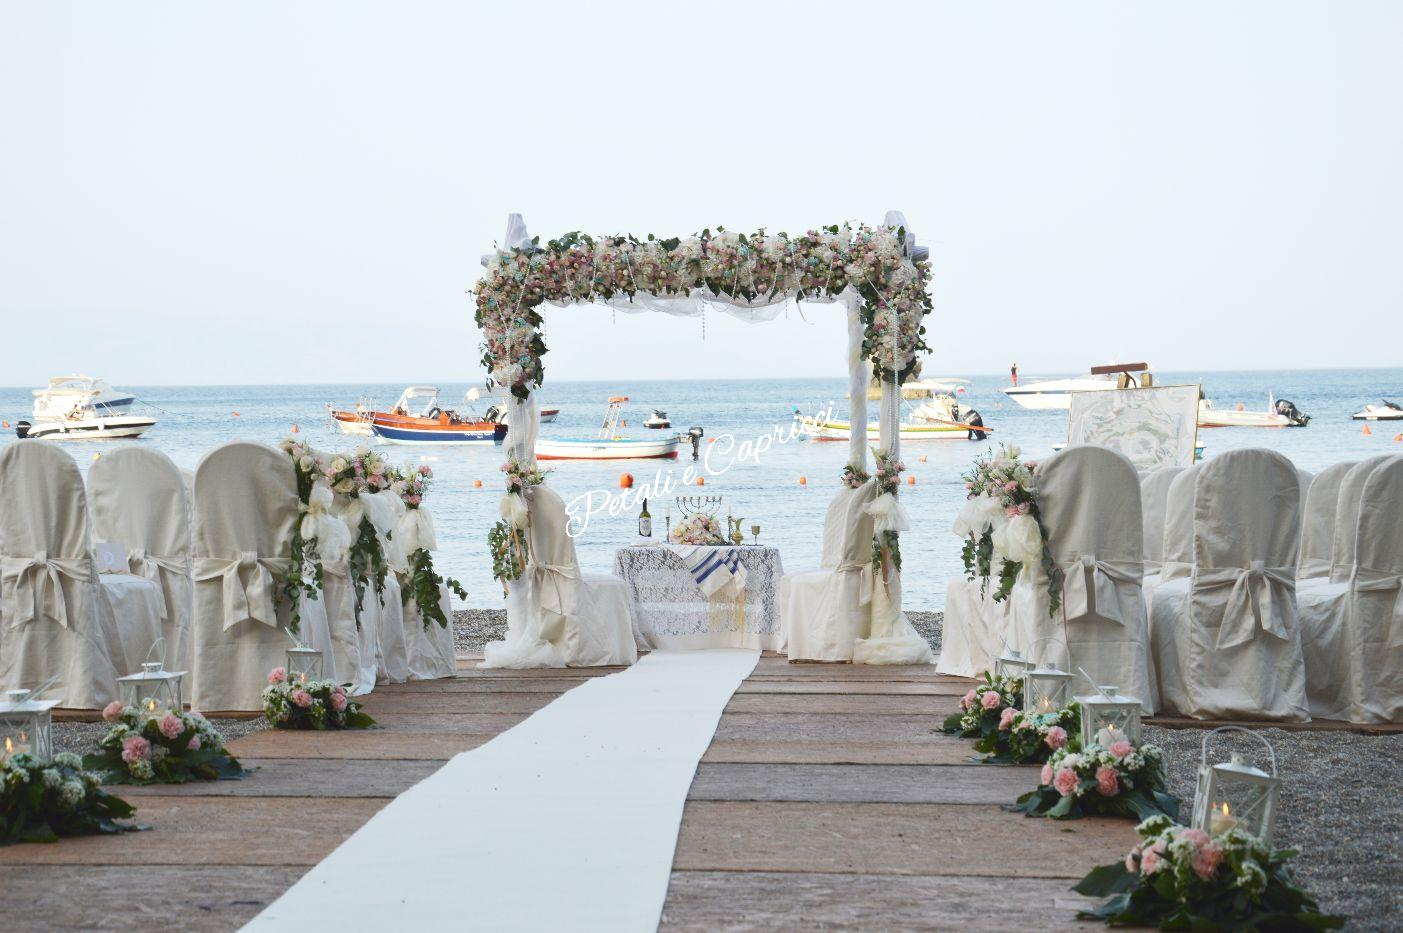 View: Matrimonio in Spiaggia a Taormina (19 Photo)